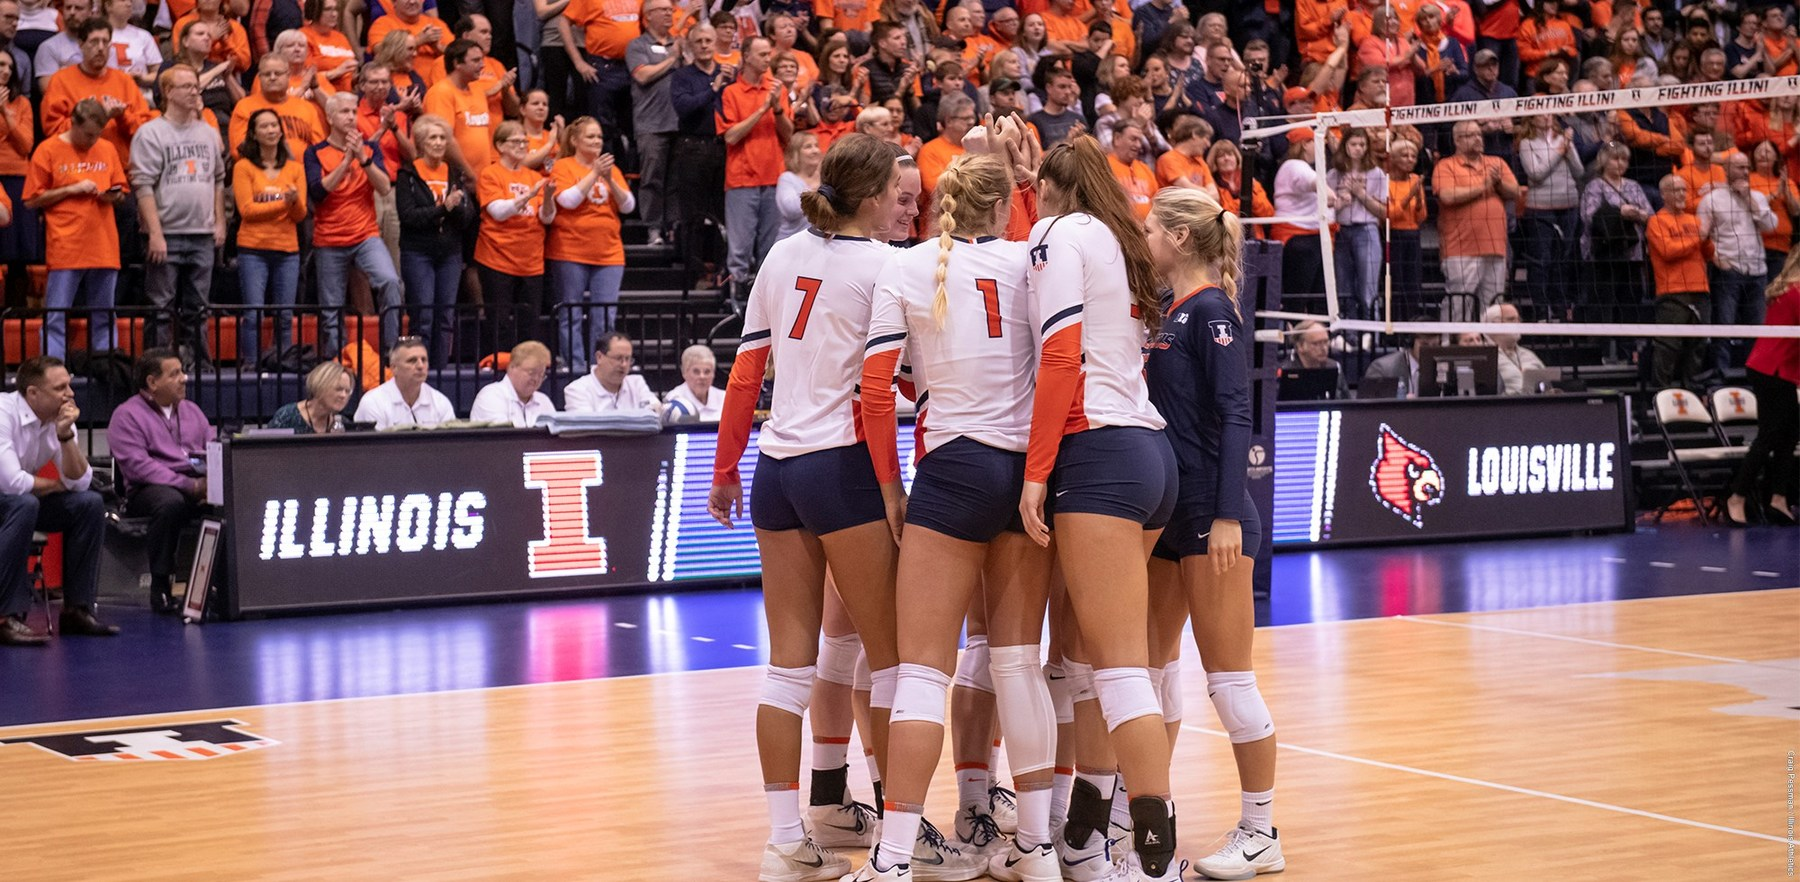 Illinois Volleyball players huddle during a match